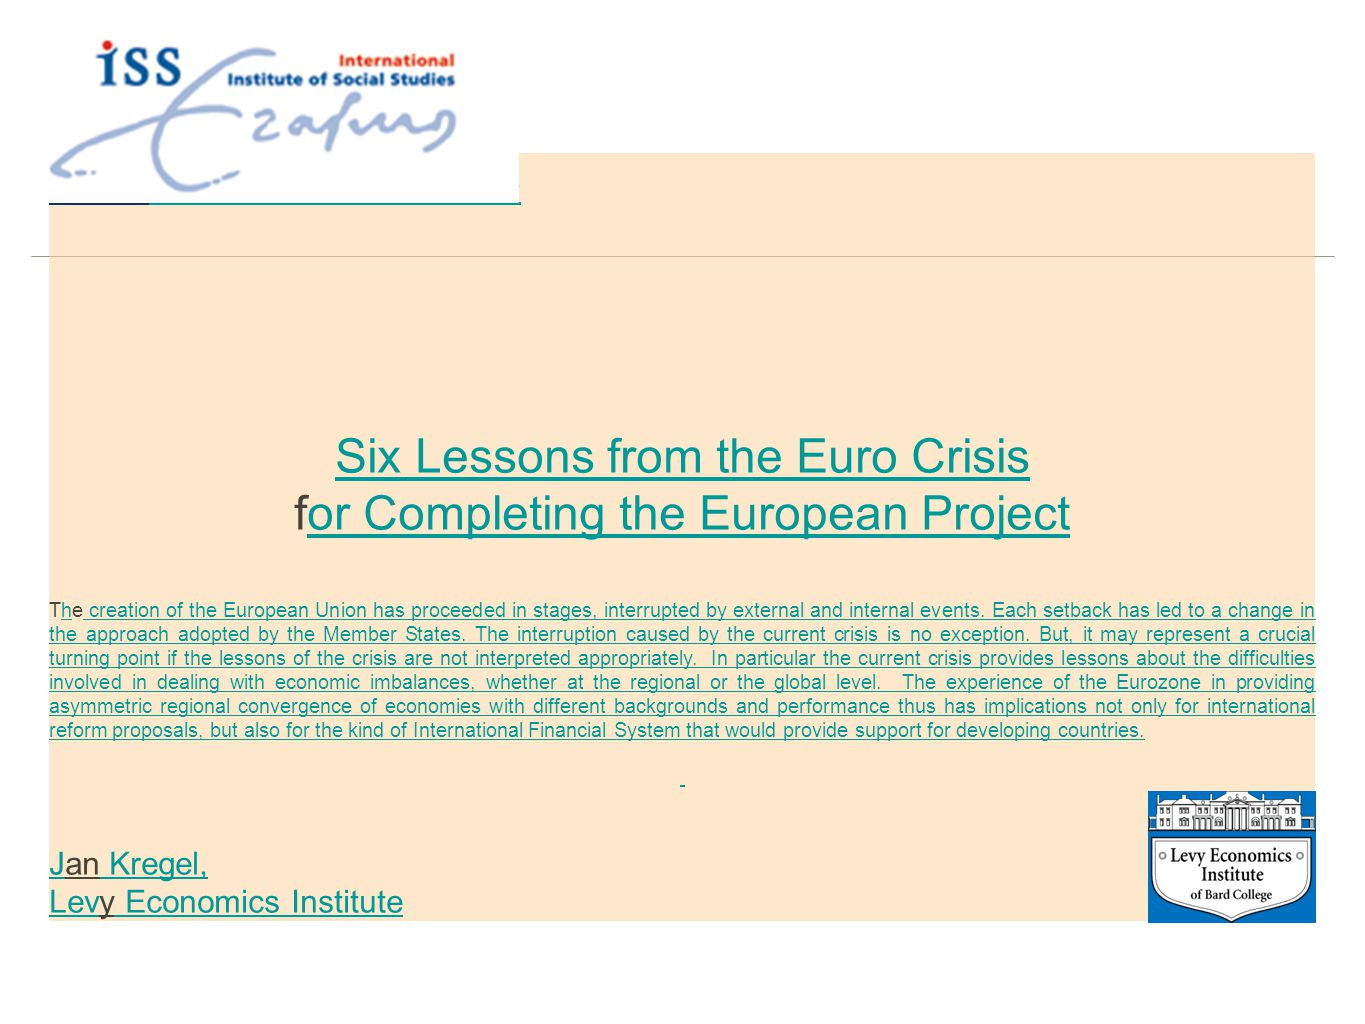 Six Lessons from the Euro Crisis for Completing the European Project